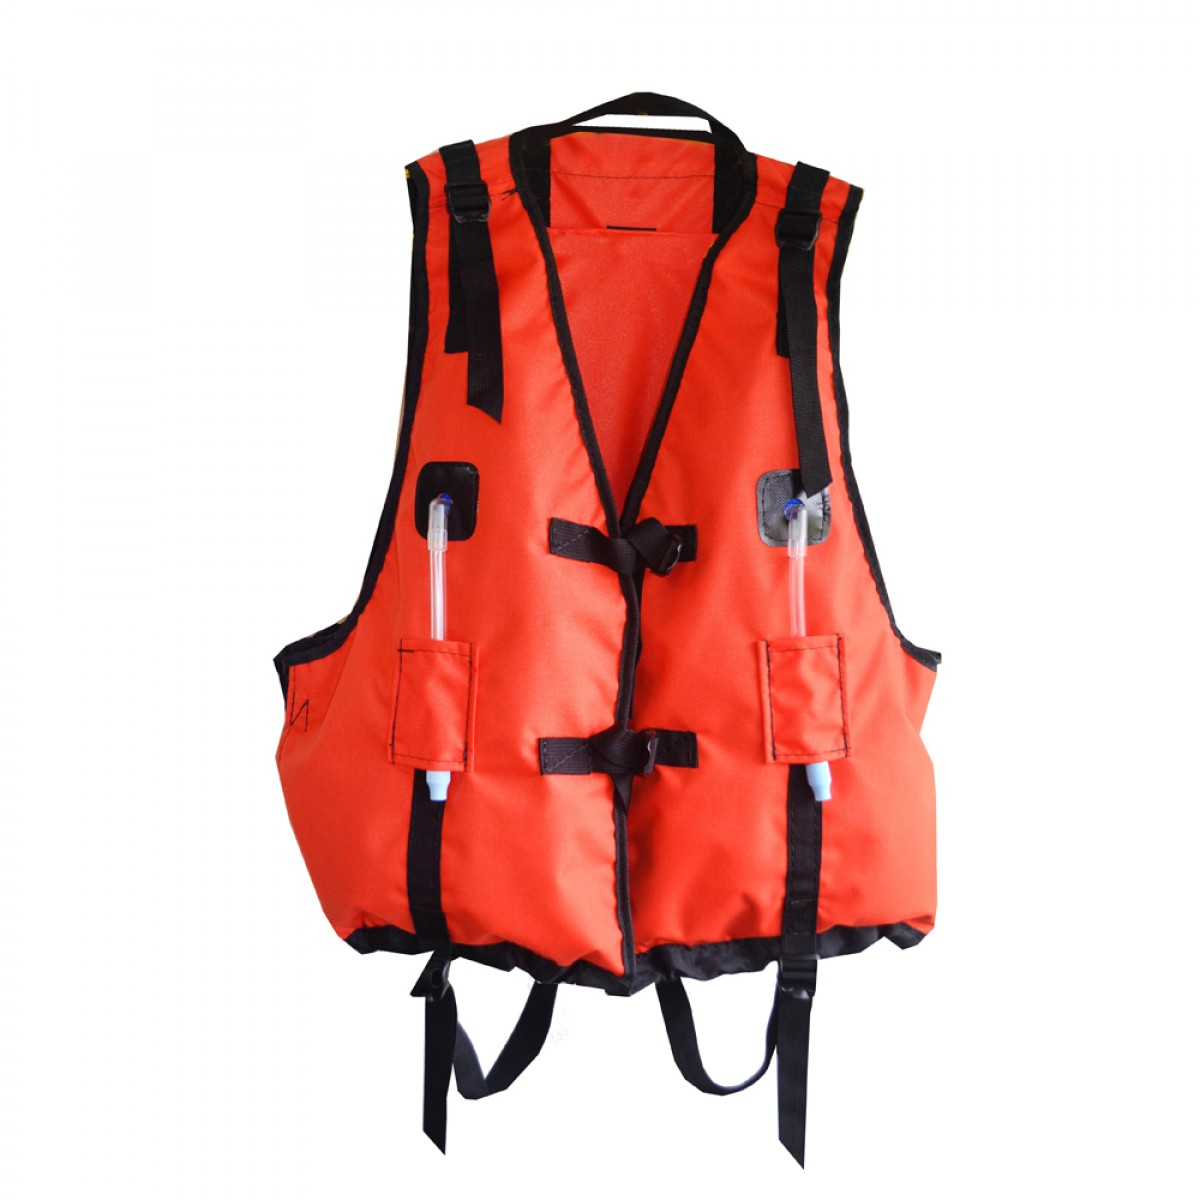 ZelGear Inflatable Safety Vest / Life Jacket image